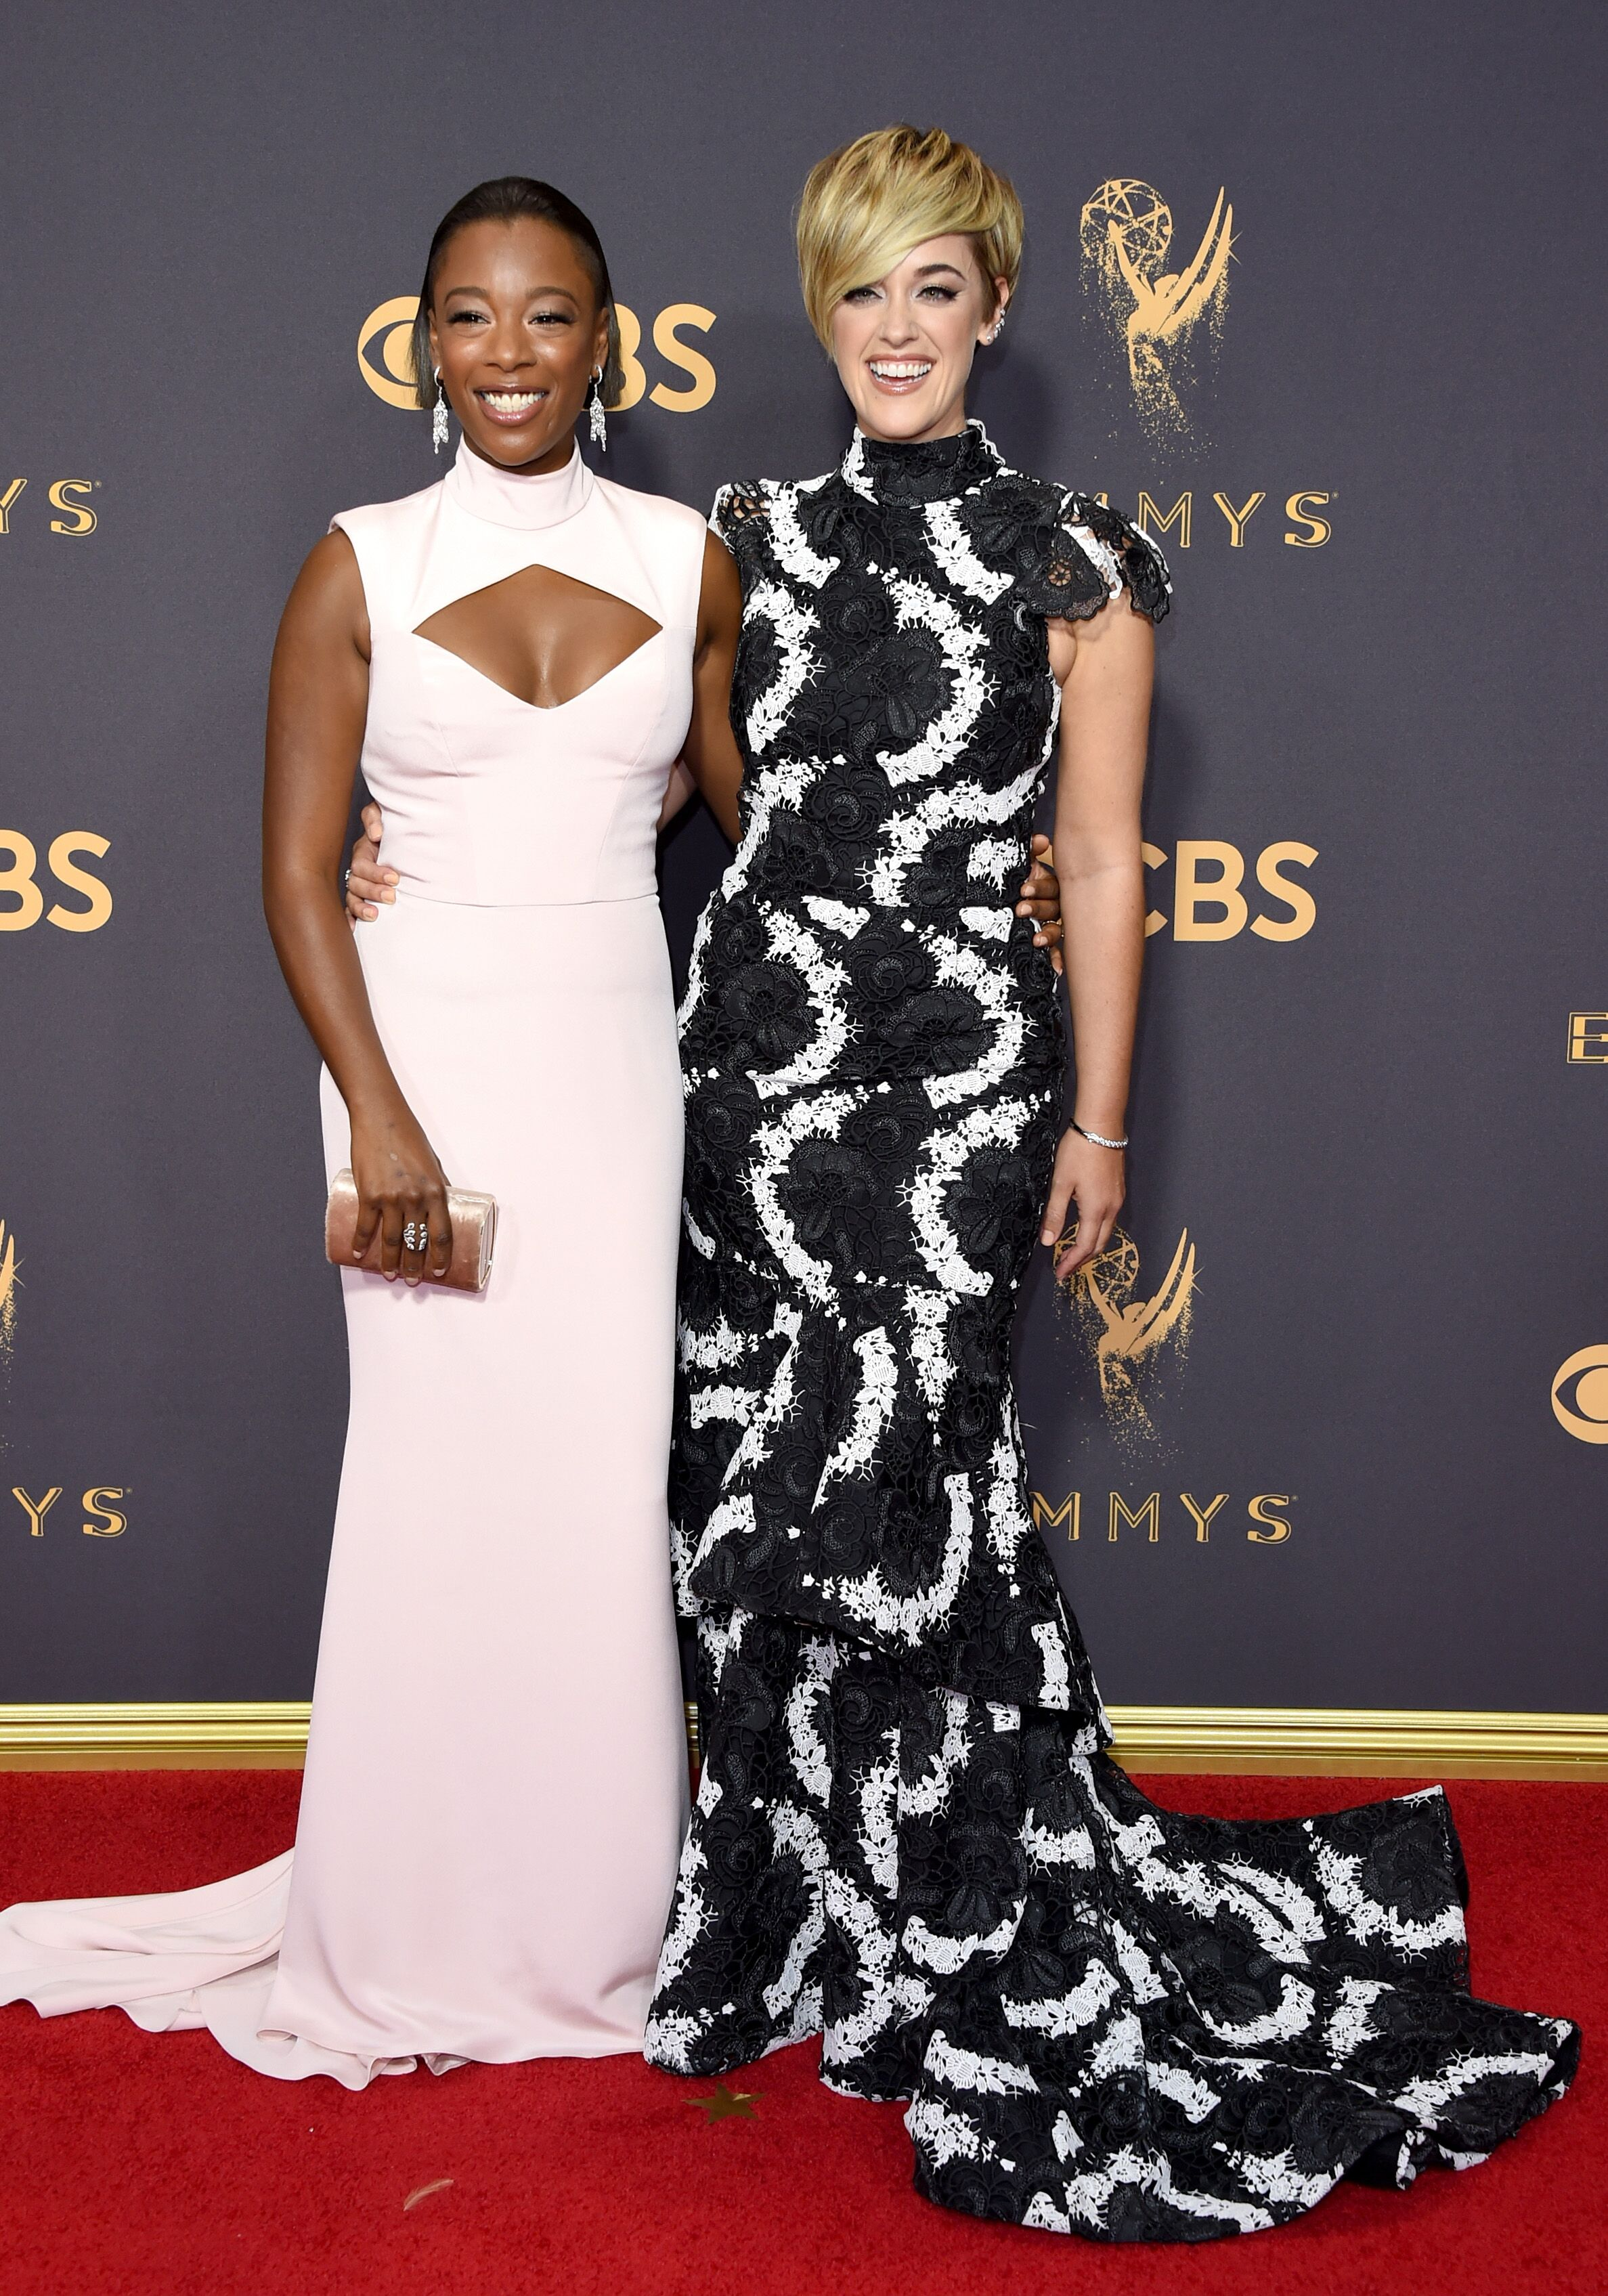 Actor Samira Wiley (L) and writer Lauren Morelli attend the 69th Annual Primetime Emmy Awards at Microsoft Theater on September 17, 2017 in Los Angeles, California | Photo: Getty Images